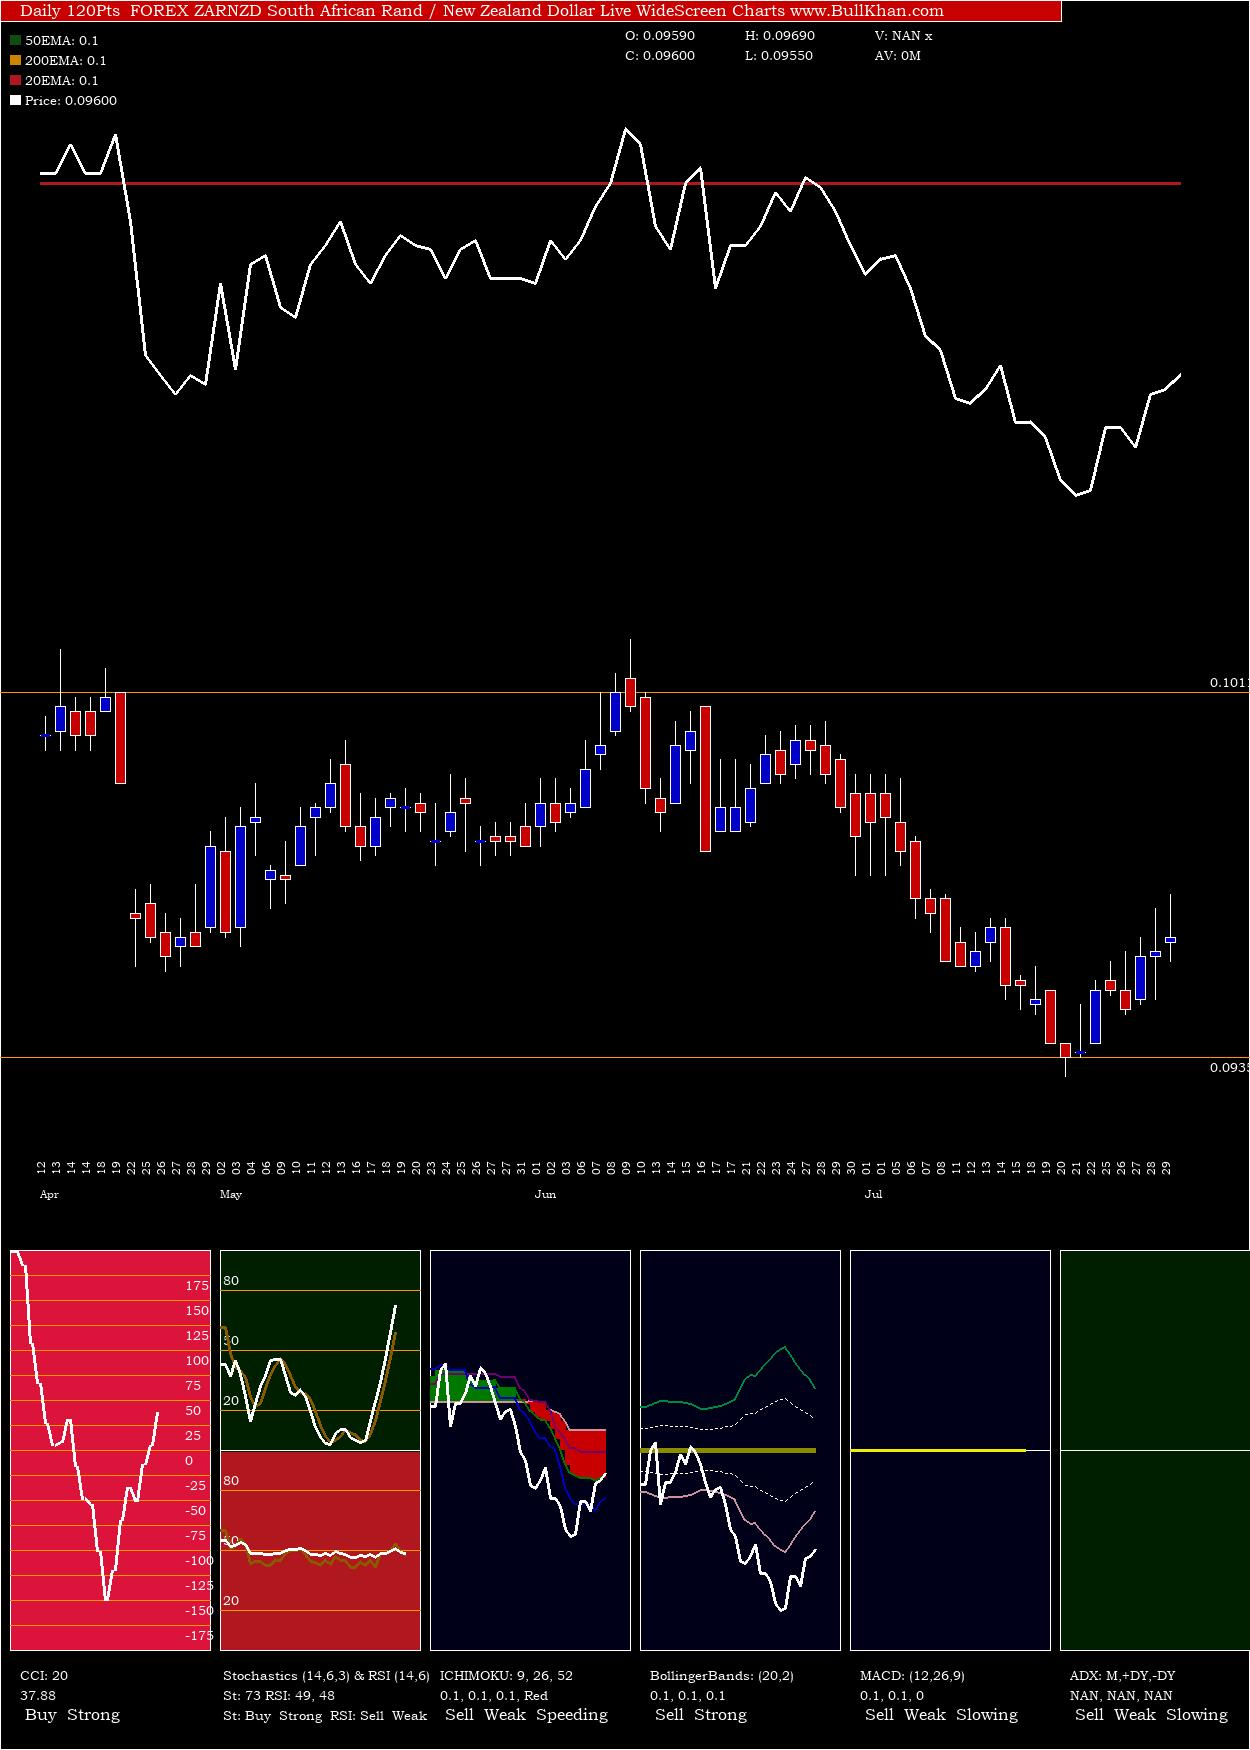 South African Rand / New Zealand Dollar charts and indicators